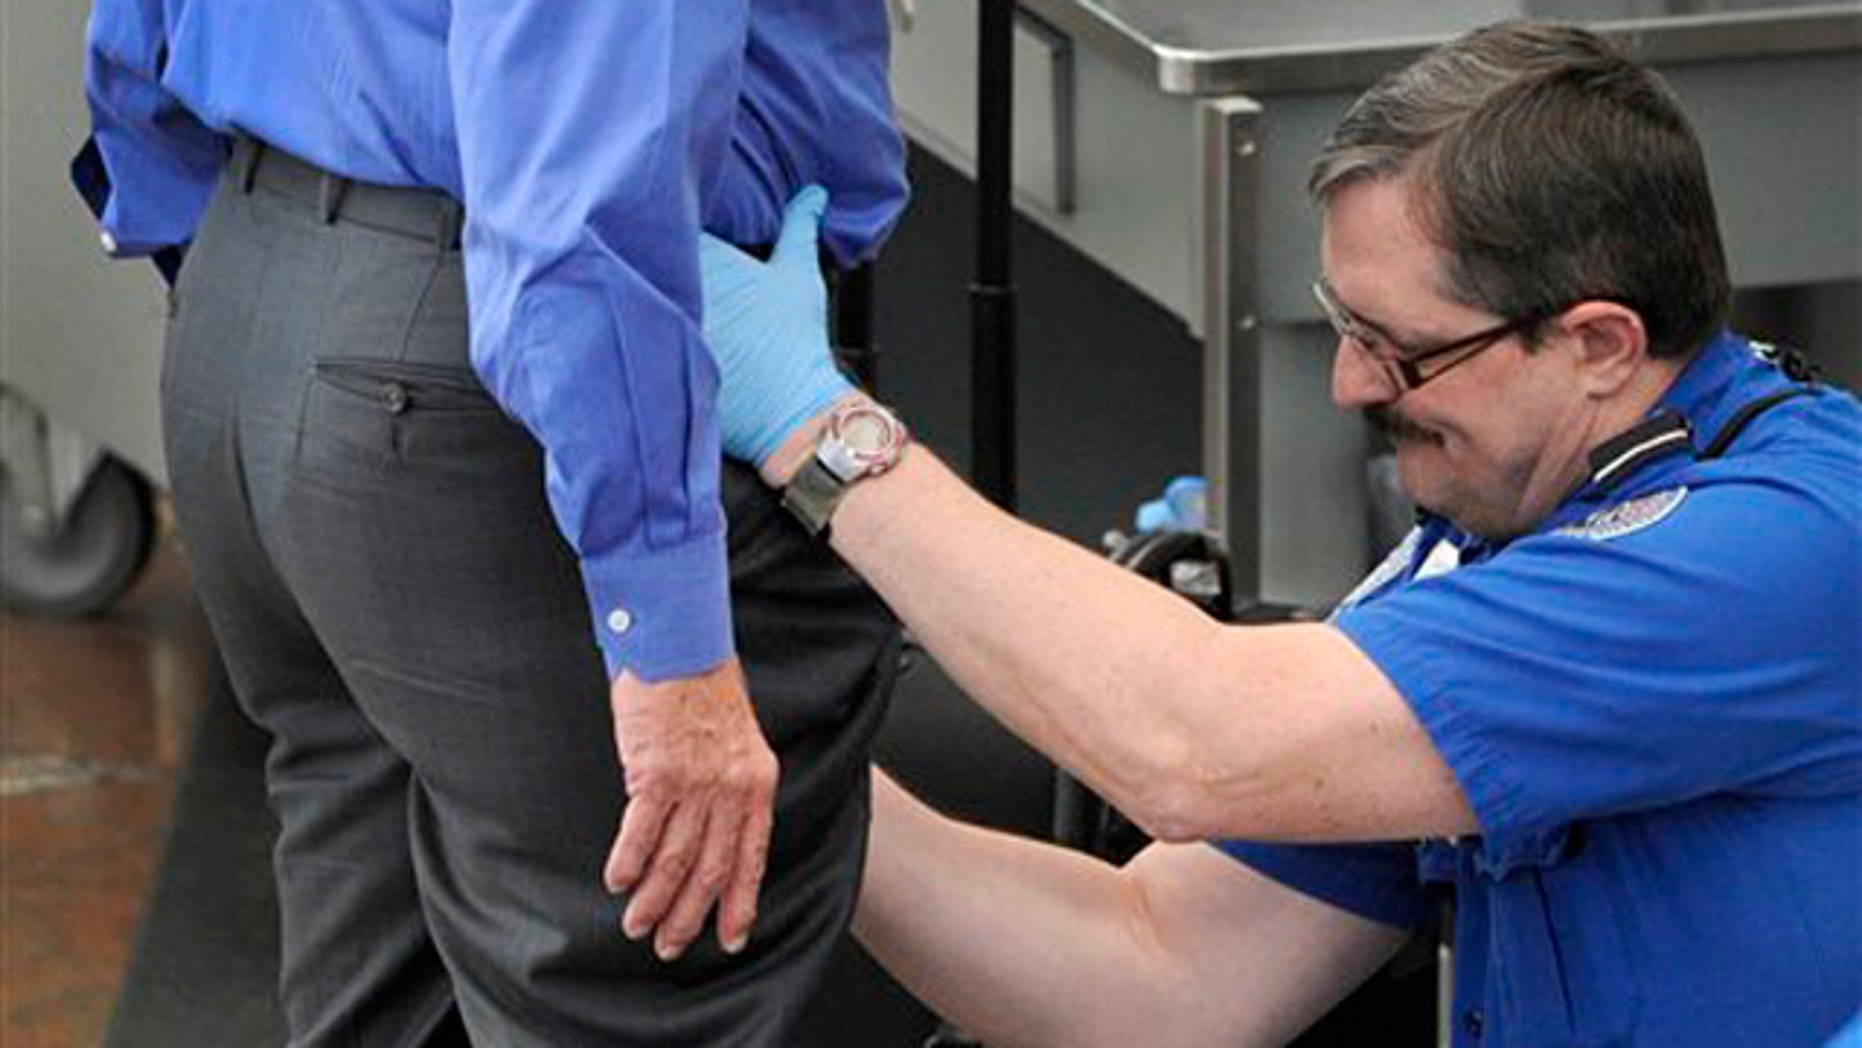 In this Nov. 17 photo, a Transportation Security Administration agent performs an enhanced pat-down on a traveler at Denver International Airport. (AP Photo)